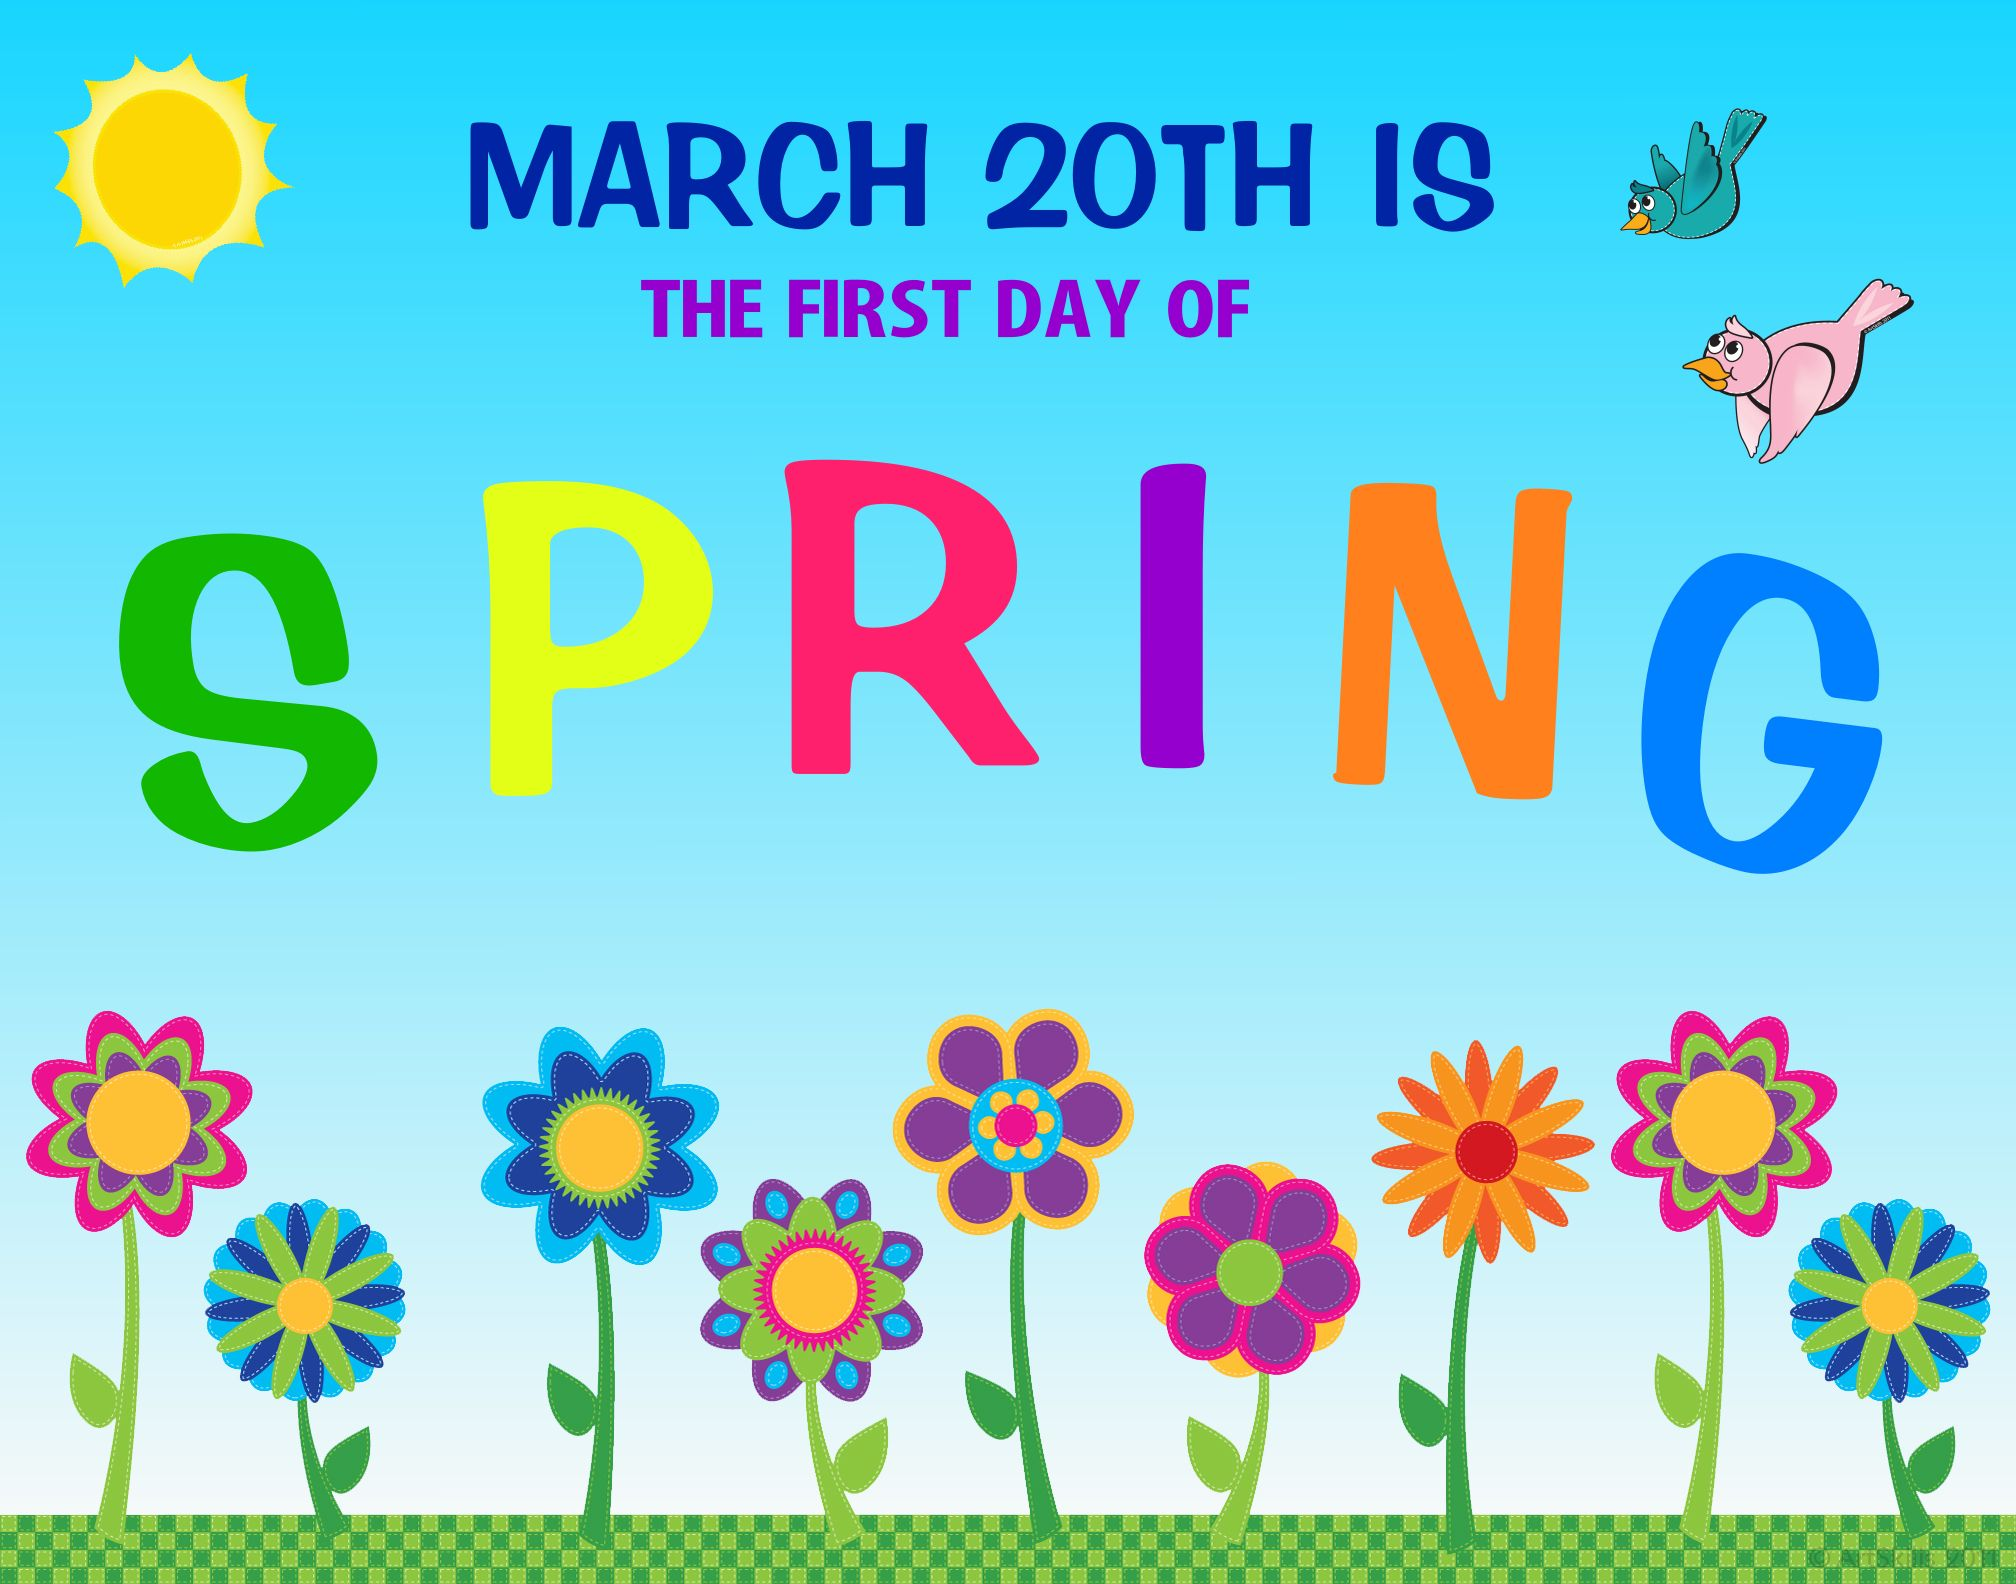 first day of spring clipart images pictures becuo happy spring rh pinterest ch First Day of Spring Graphics first day of spring clipart black and white